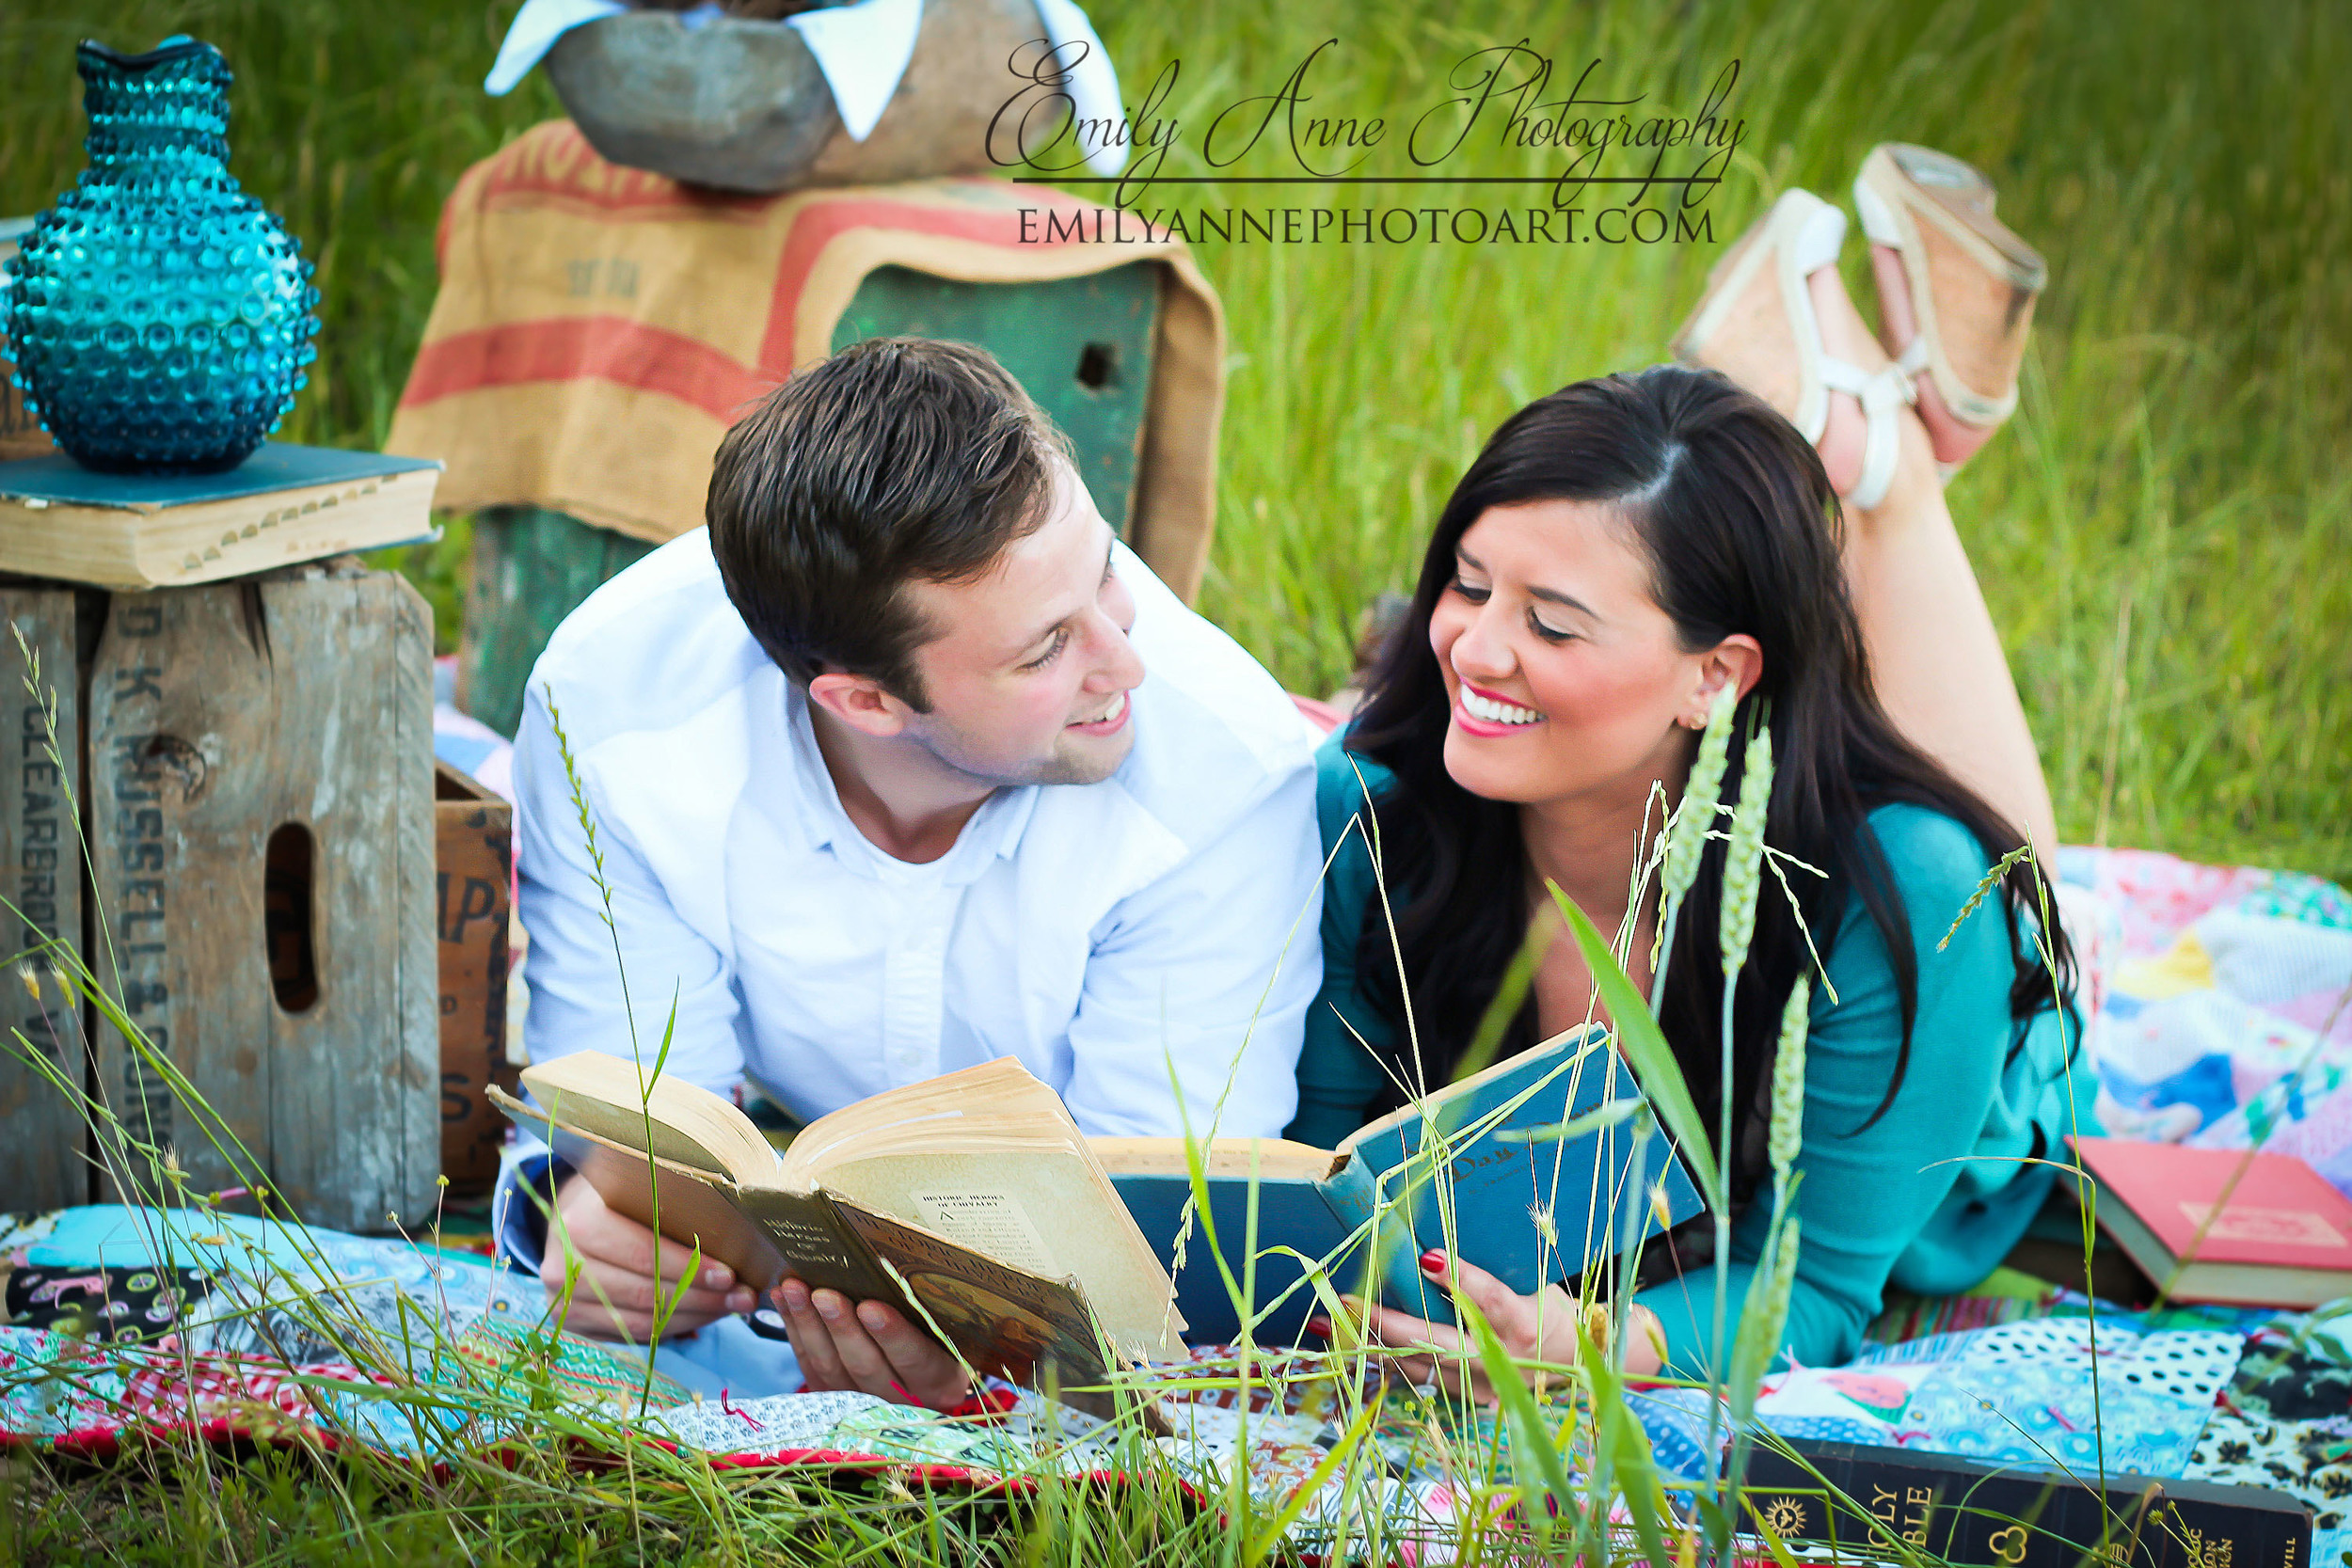 Aren't they just the cutest!? This beautiful couple is in another magical place. :)